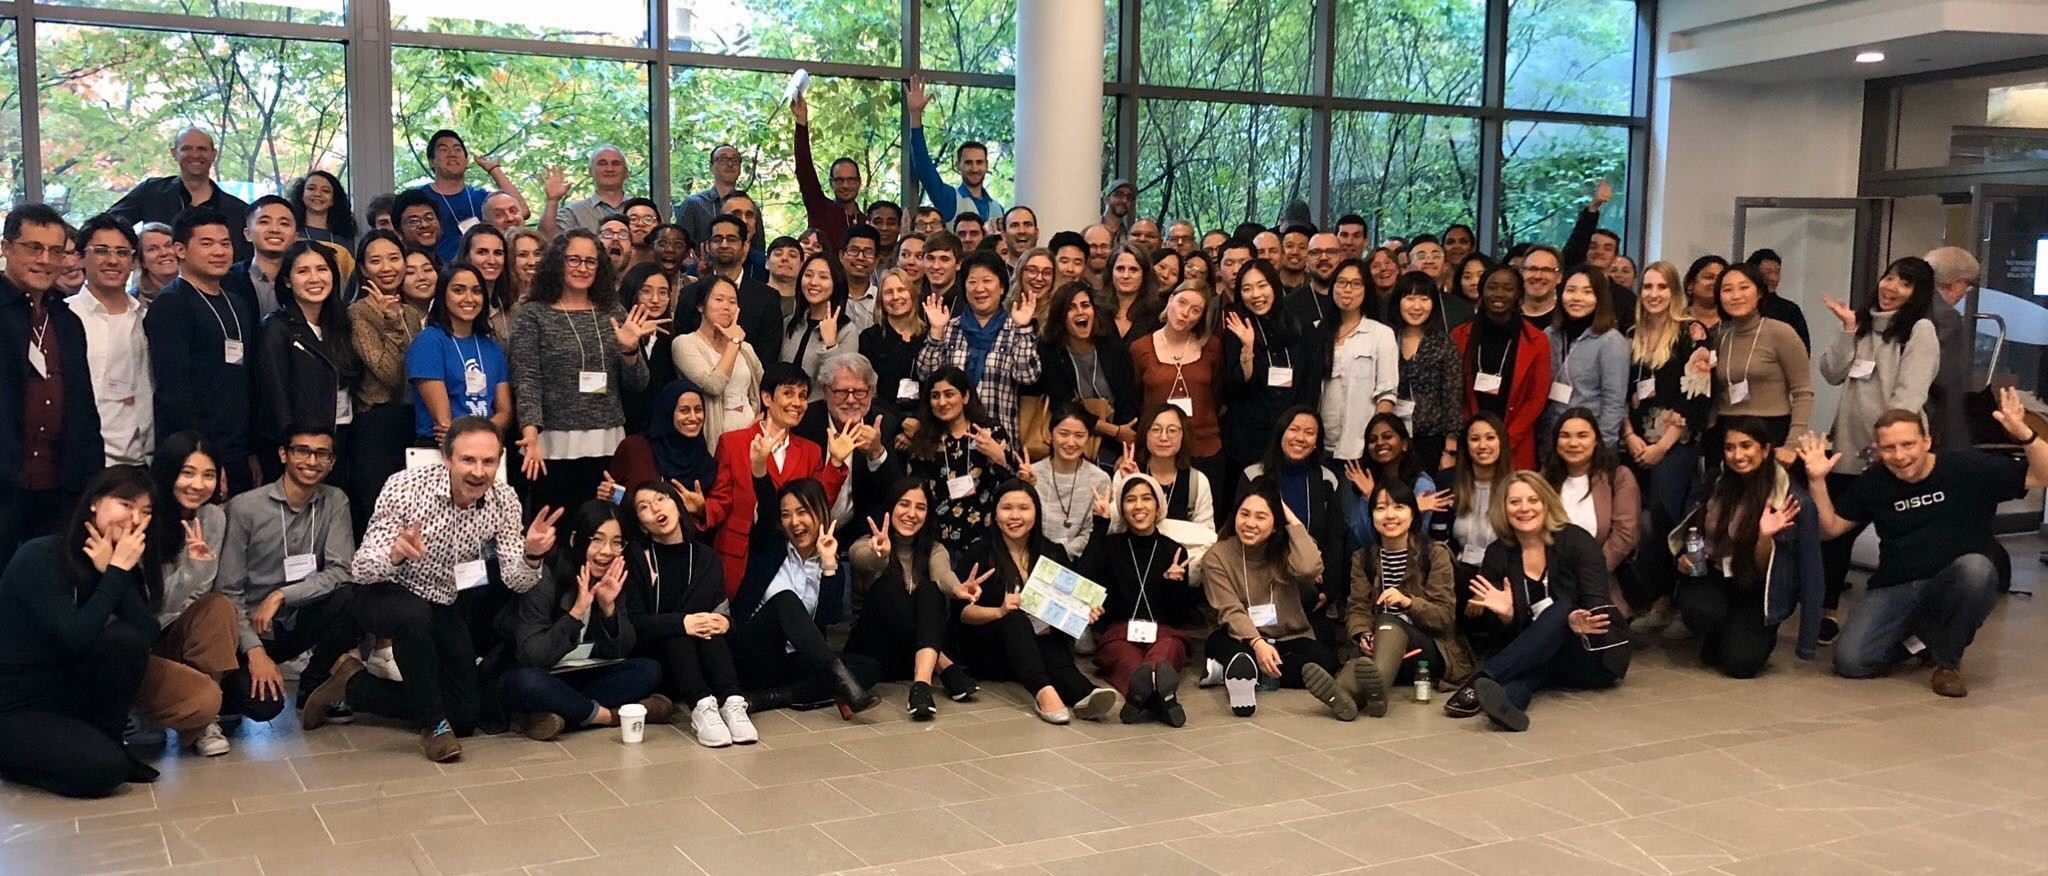 Group photo of the IBM Canada Design Summit 2019 attendees